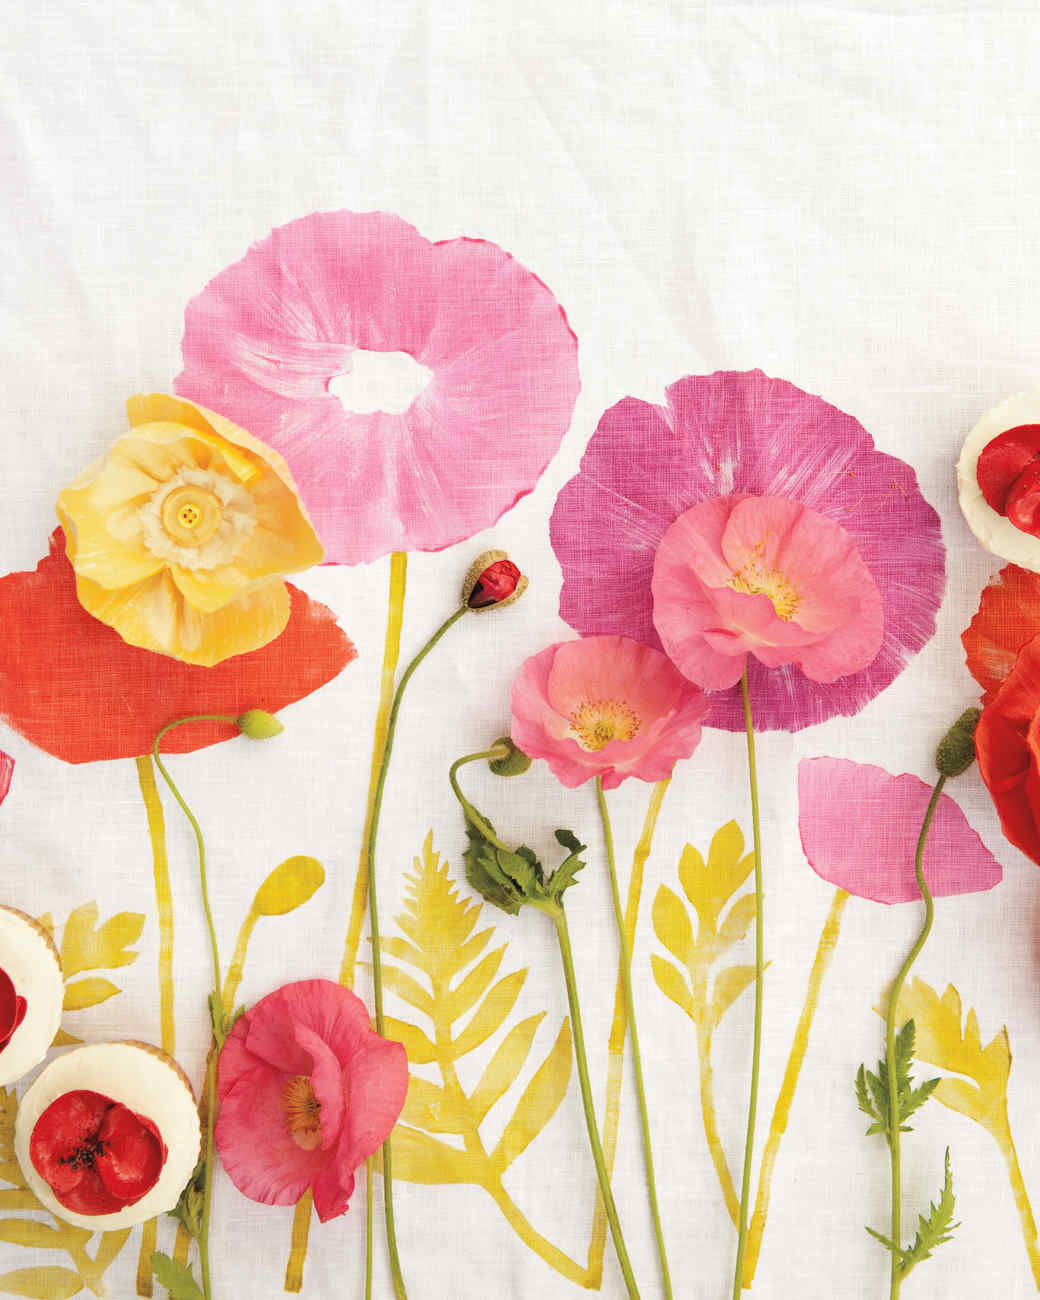 poppies-cover015-0511mld105934.jpg